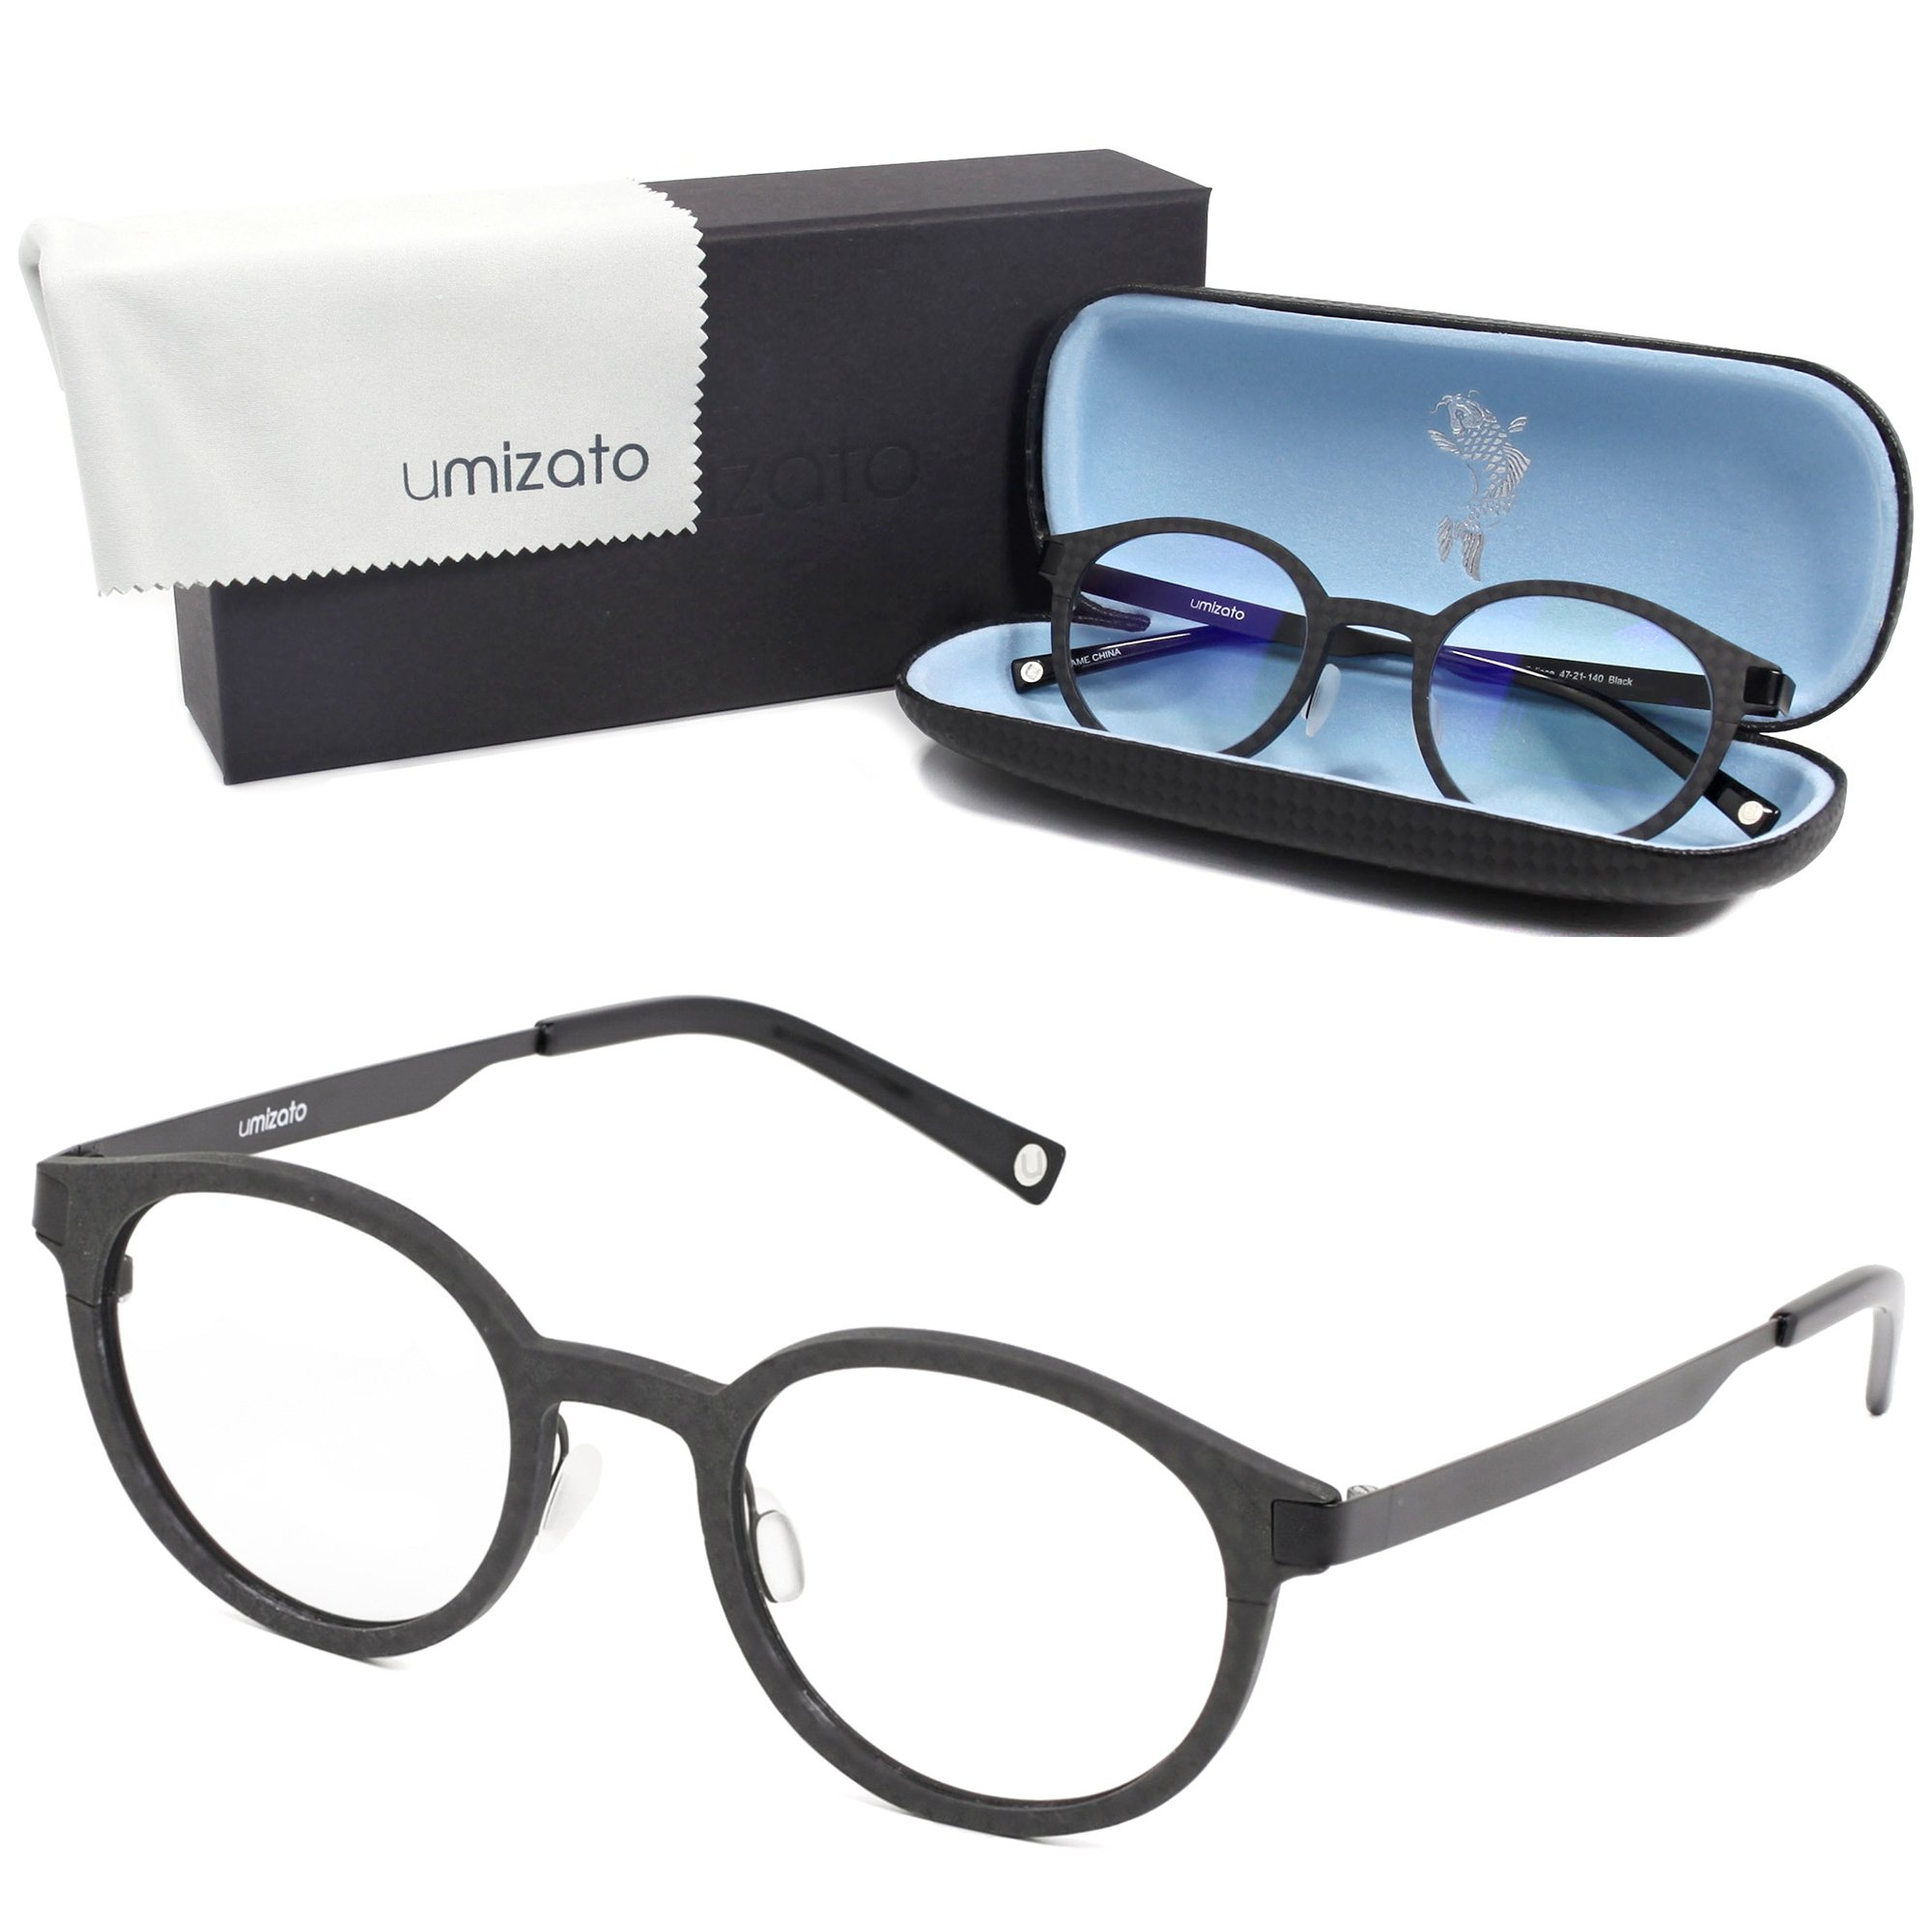 UMIZATO Gaming Computer Glasses Blue Light Blocking for Men Women in Carbon Fiber - Clear Lens - FDA Approved - Relieves Digital Eye Strain, UV Blocker, Anti-Glare, Anti-Fatigue (Eclipse in Black)